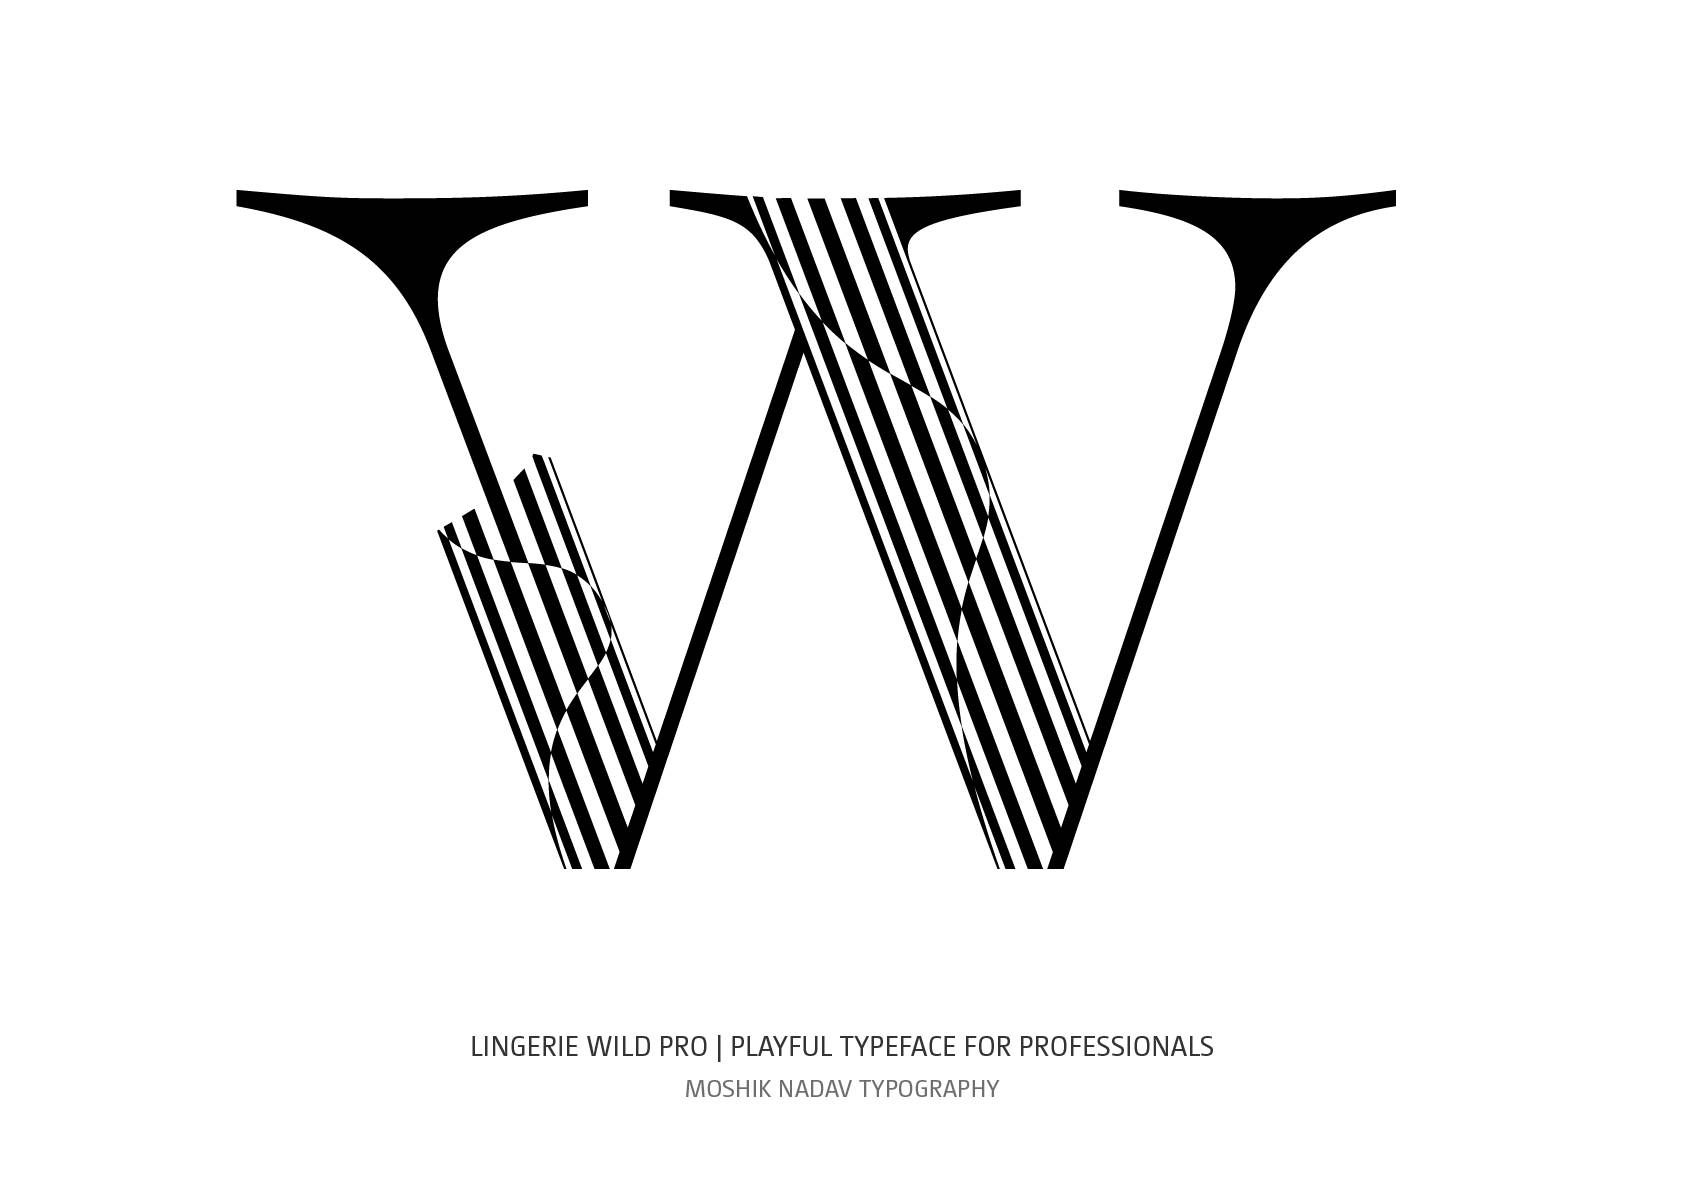 Beautiful W letter designed with Lingerie Wild Pro Typeface by Moshik Nadav Fashion Typography